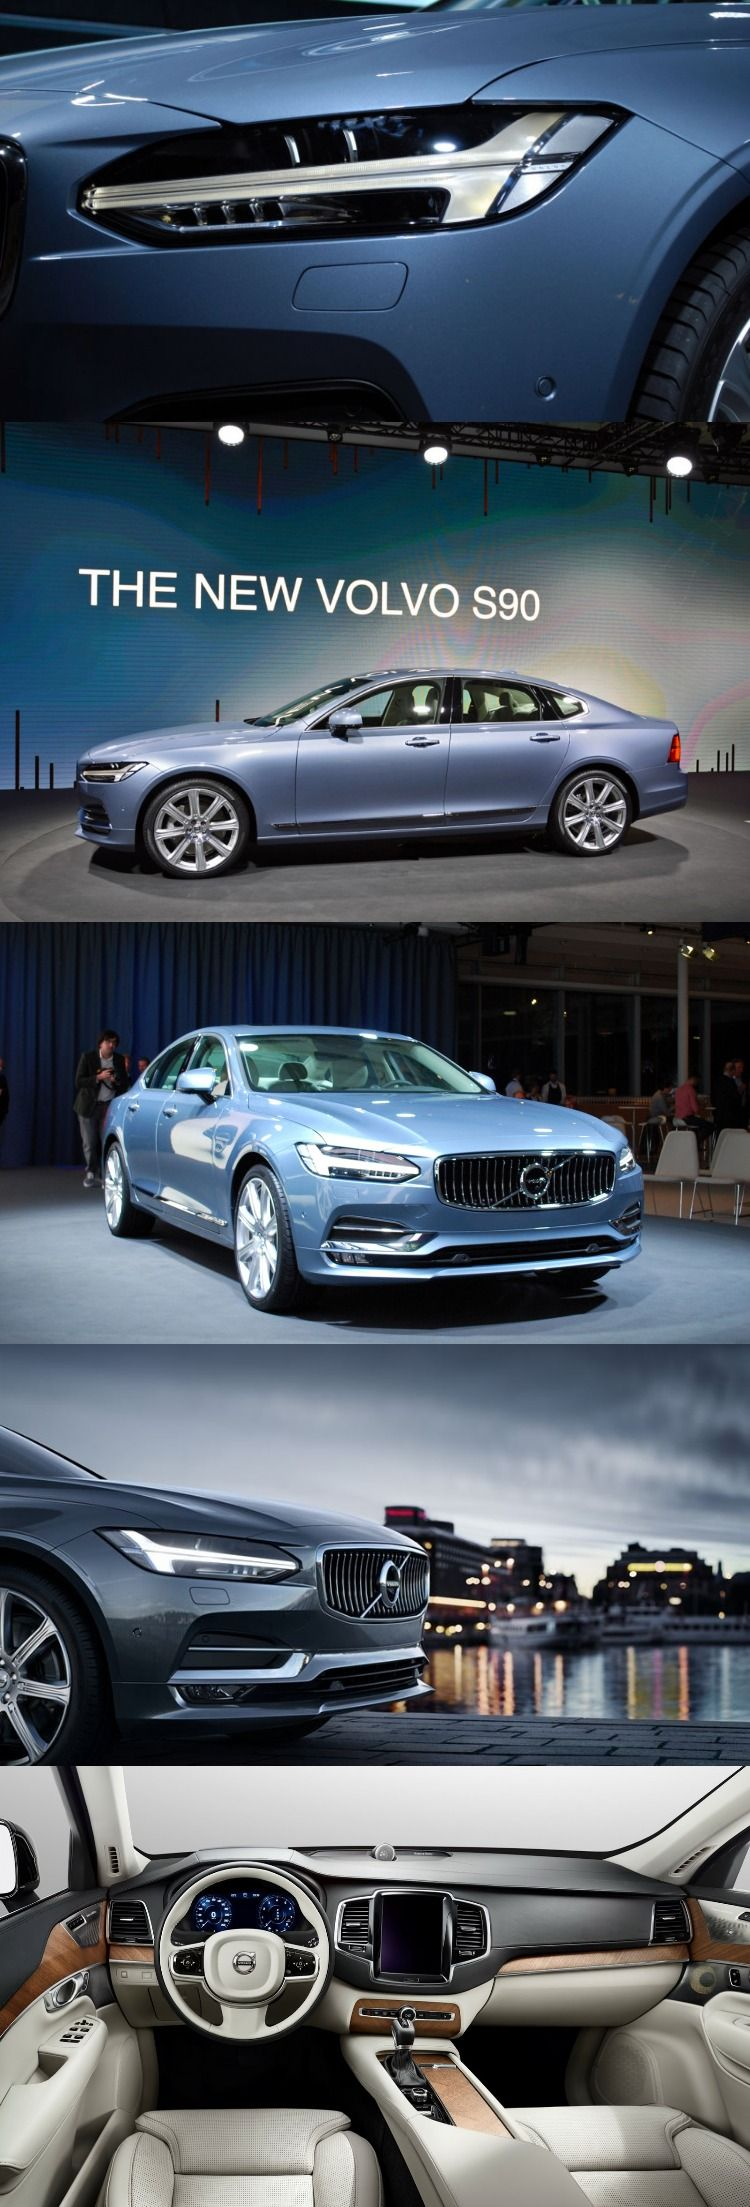 Volvo S90 Launched In India At Inr 53 5 Lakhs Volvo S90 Volvo Volvo Cars